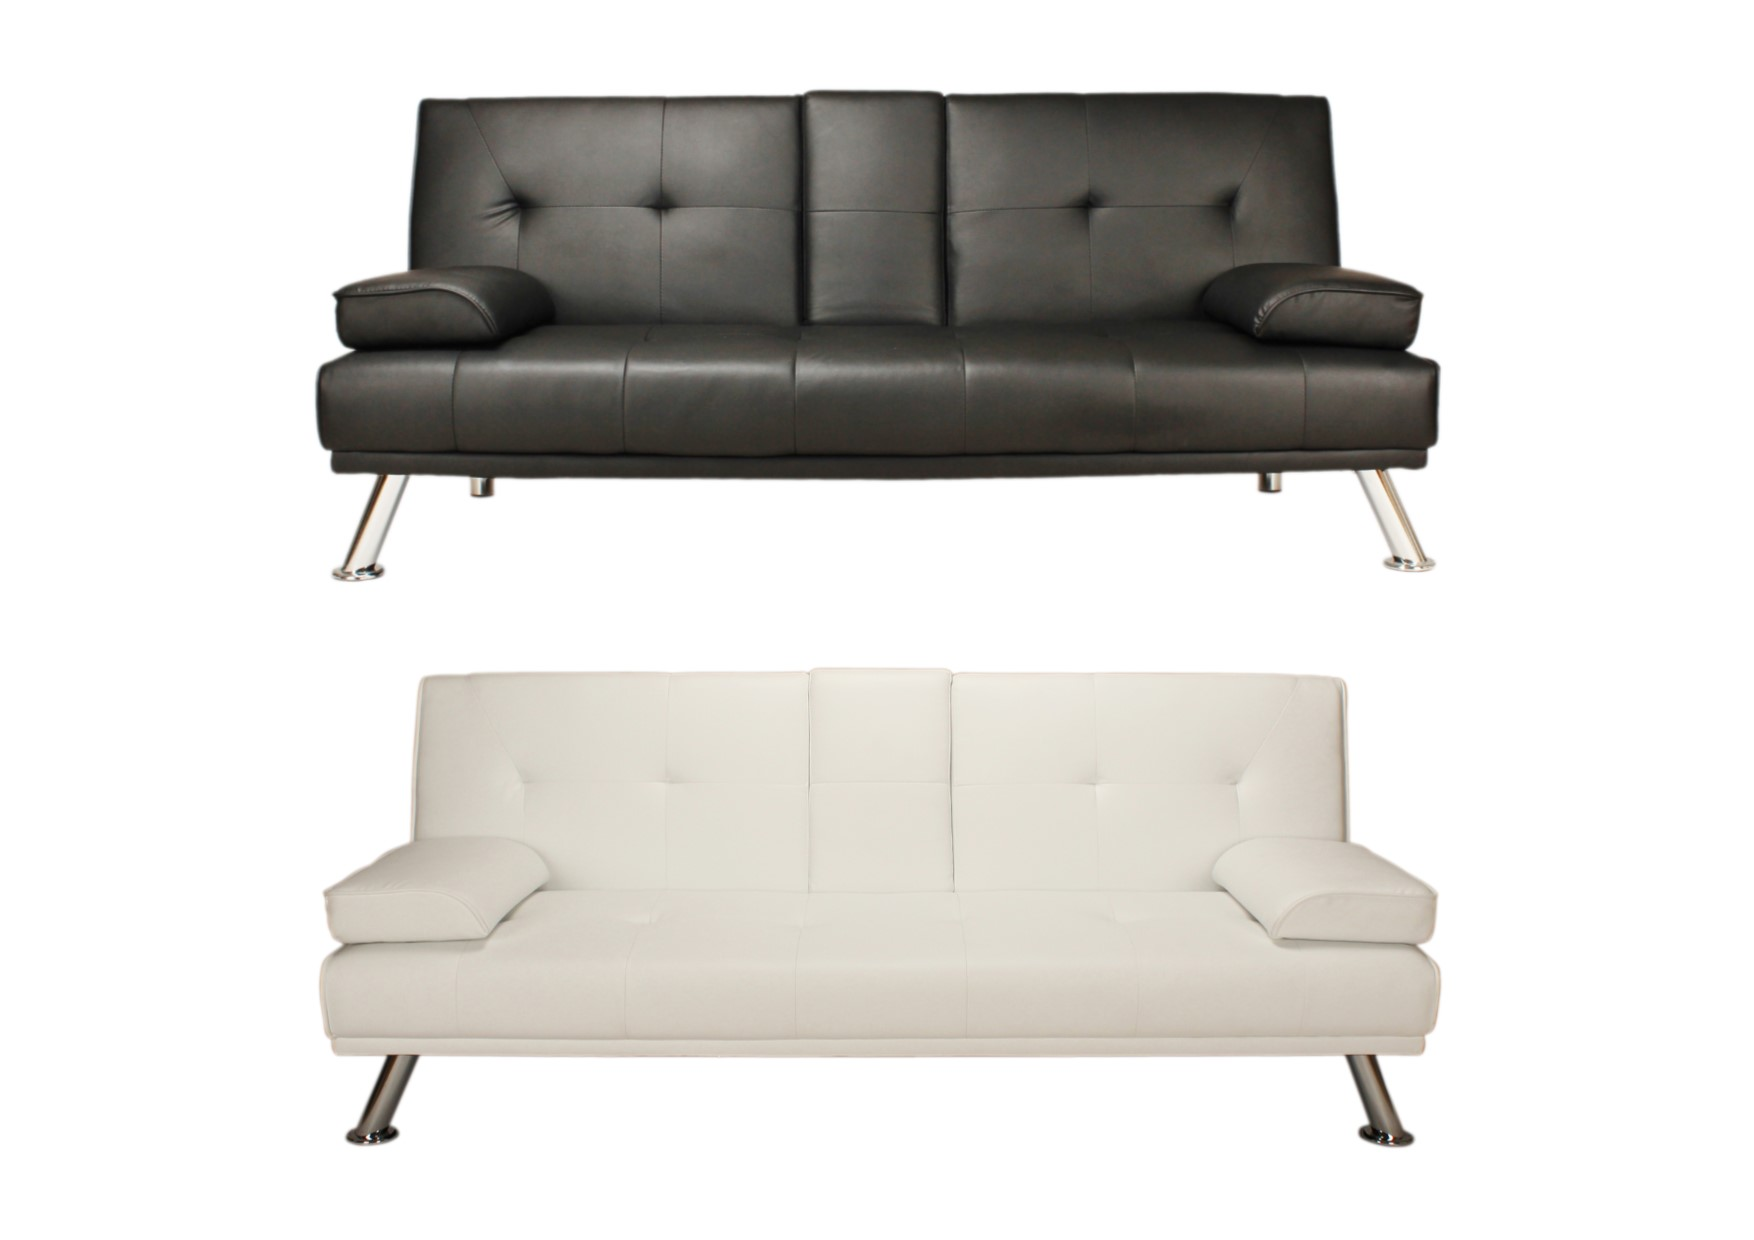 Peachy Details About Como Contemporary Faux Leather Sofa Bed Click Clack Black White Ncnpc Chair Design For Home Ncnpcorg